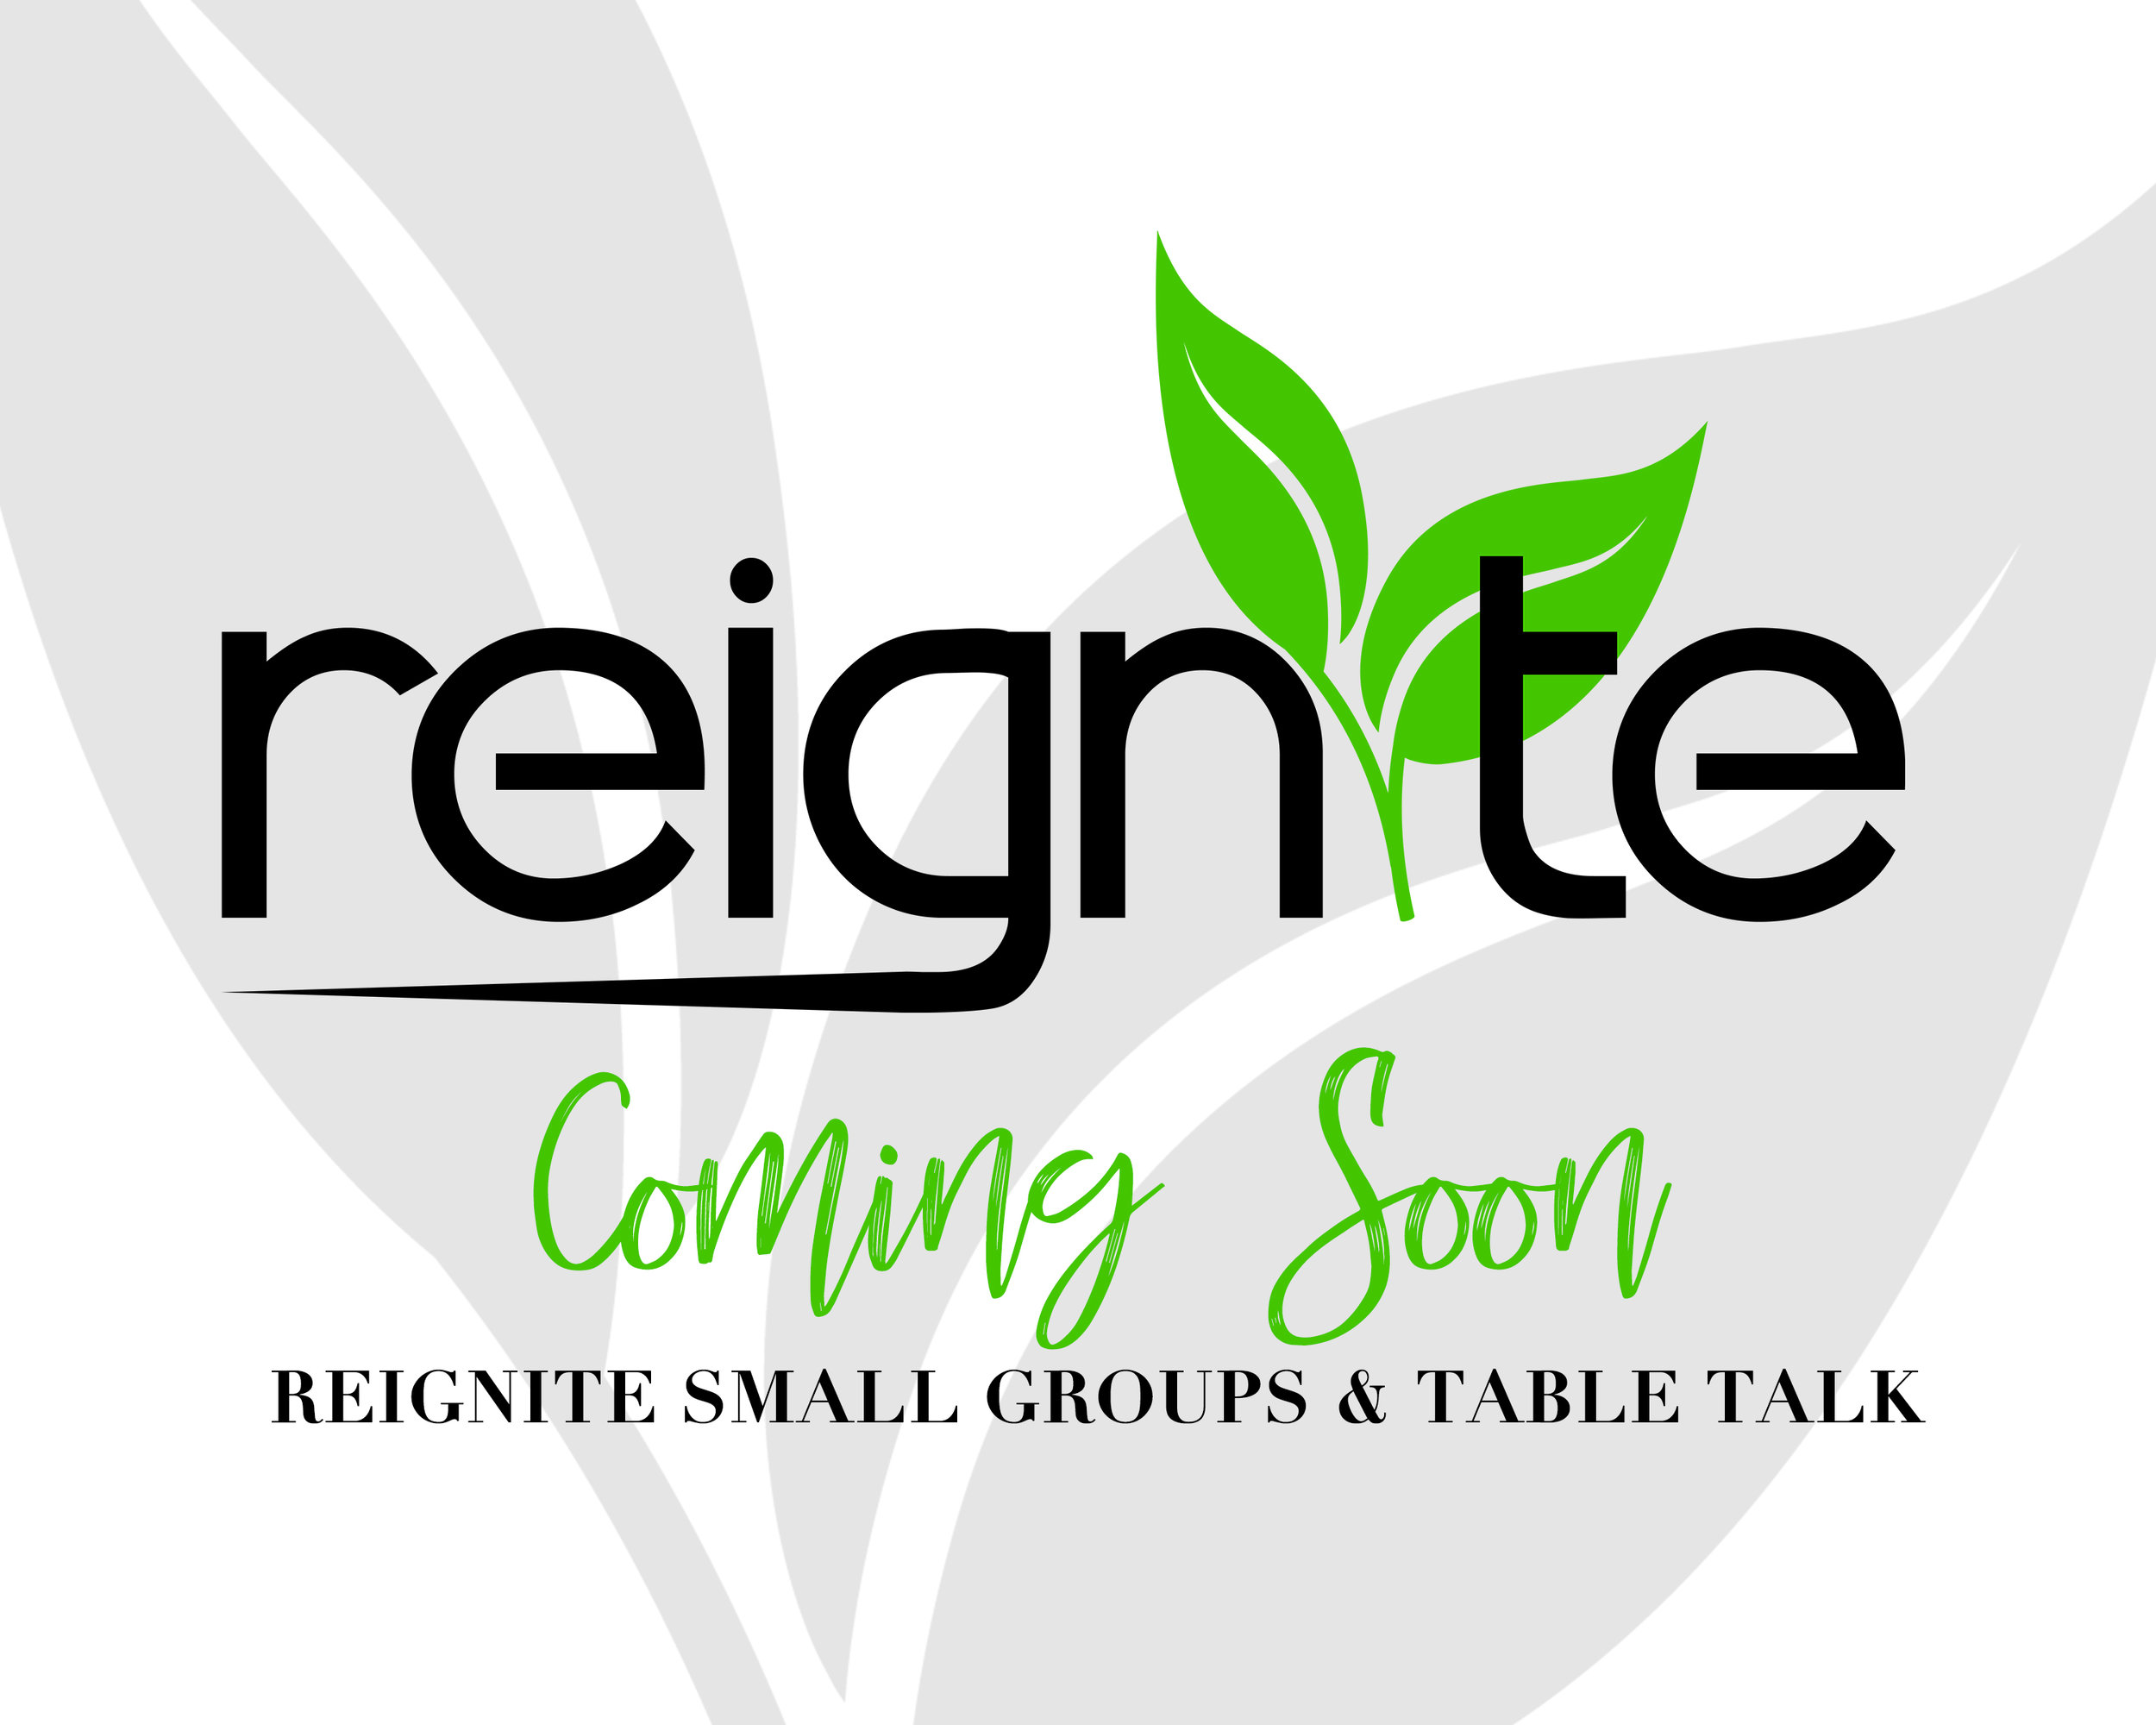 Reignite - Small Group & Table Promo - Reignite.jpg